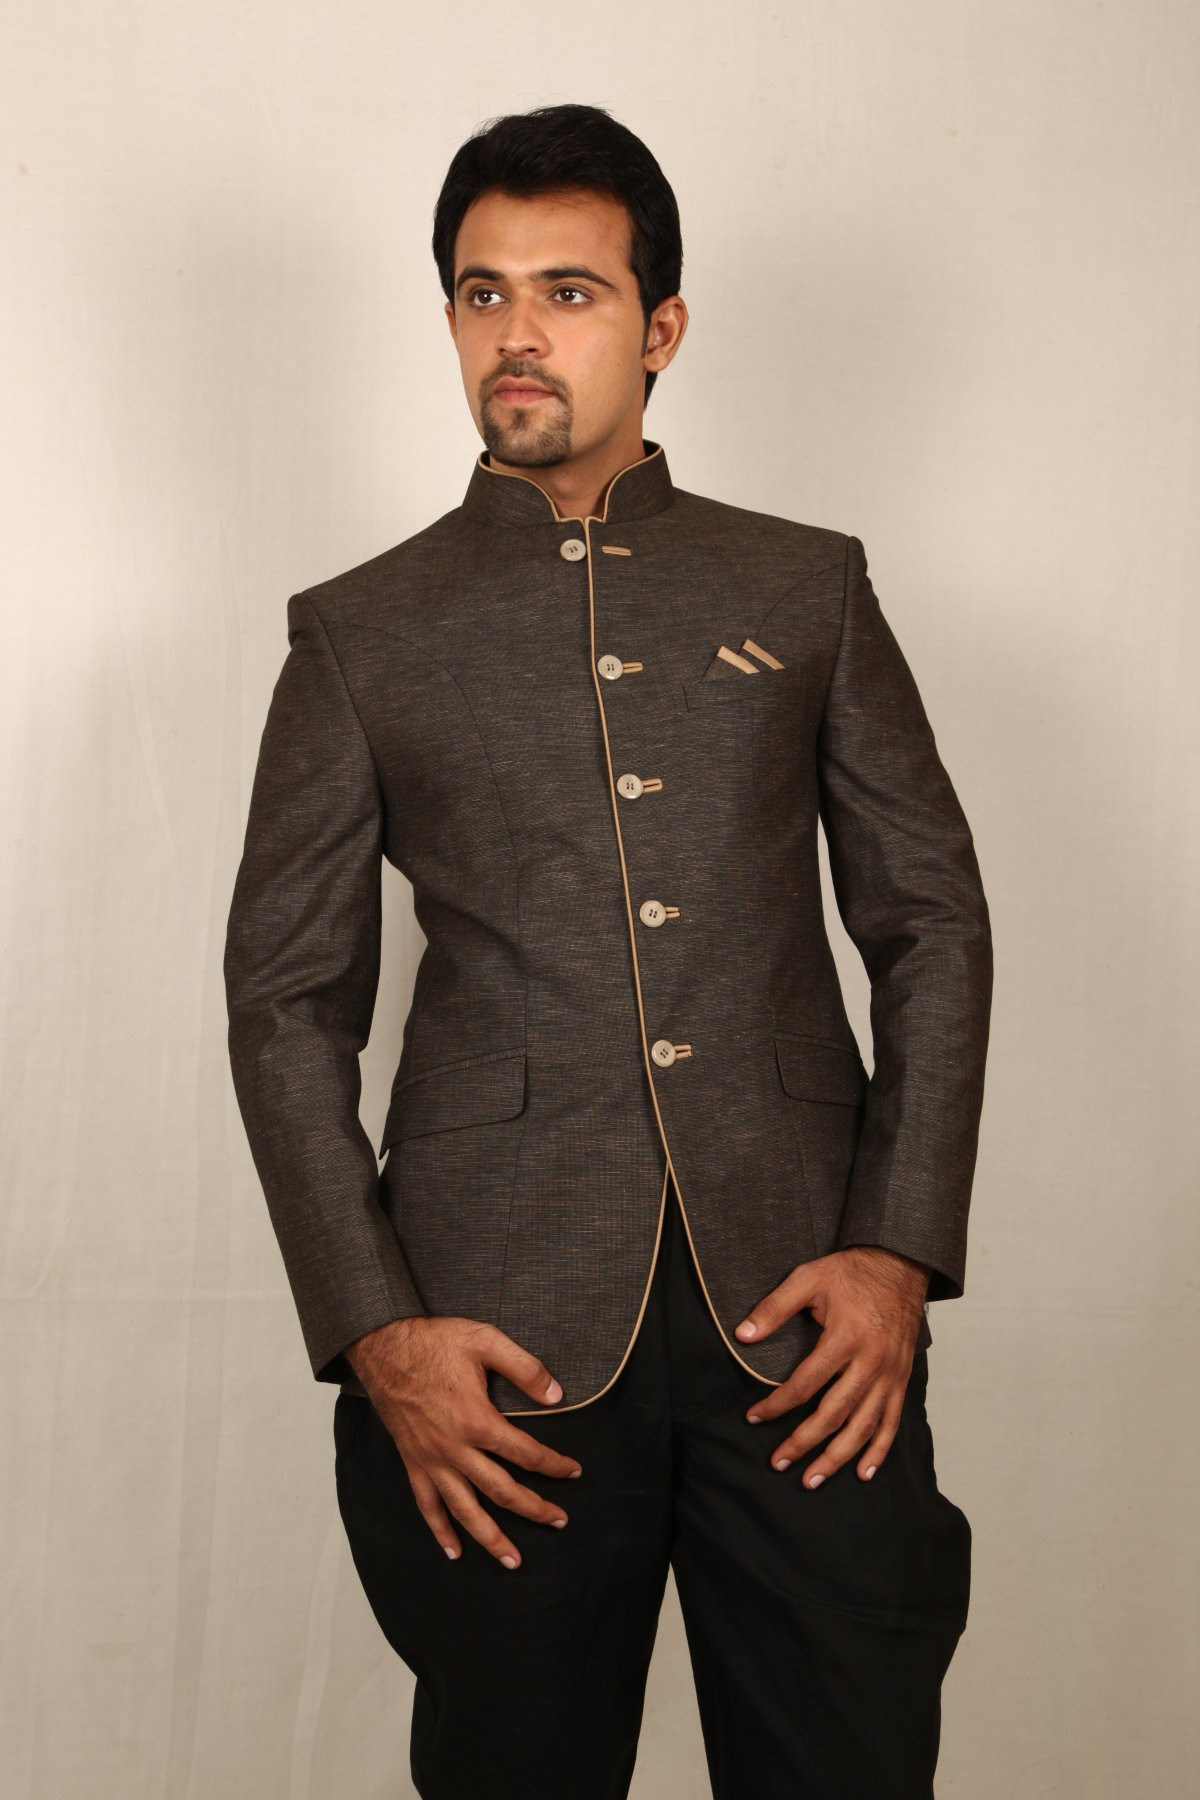 019007aba7 Designer Suits - Buy Men Suit, Party wear Suits - Brown, Color: Brown